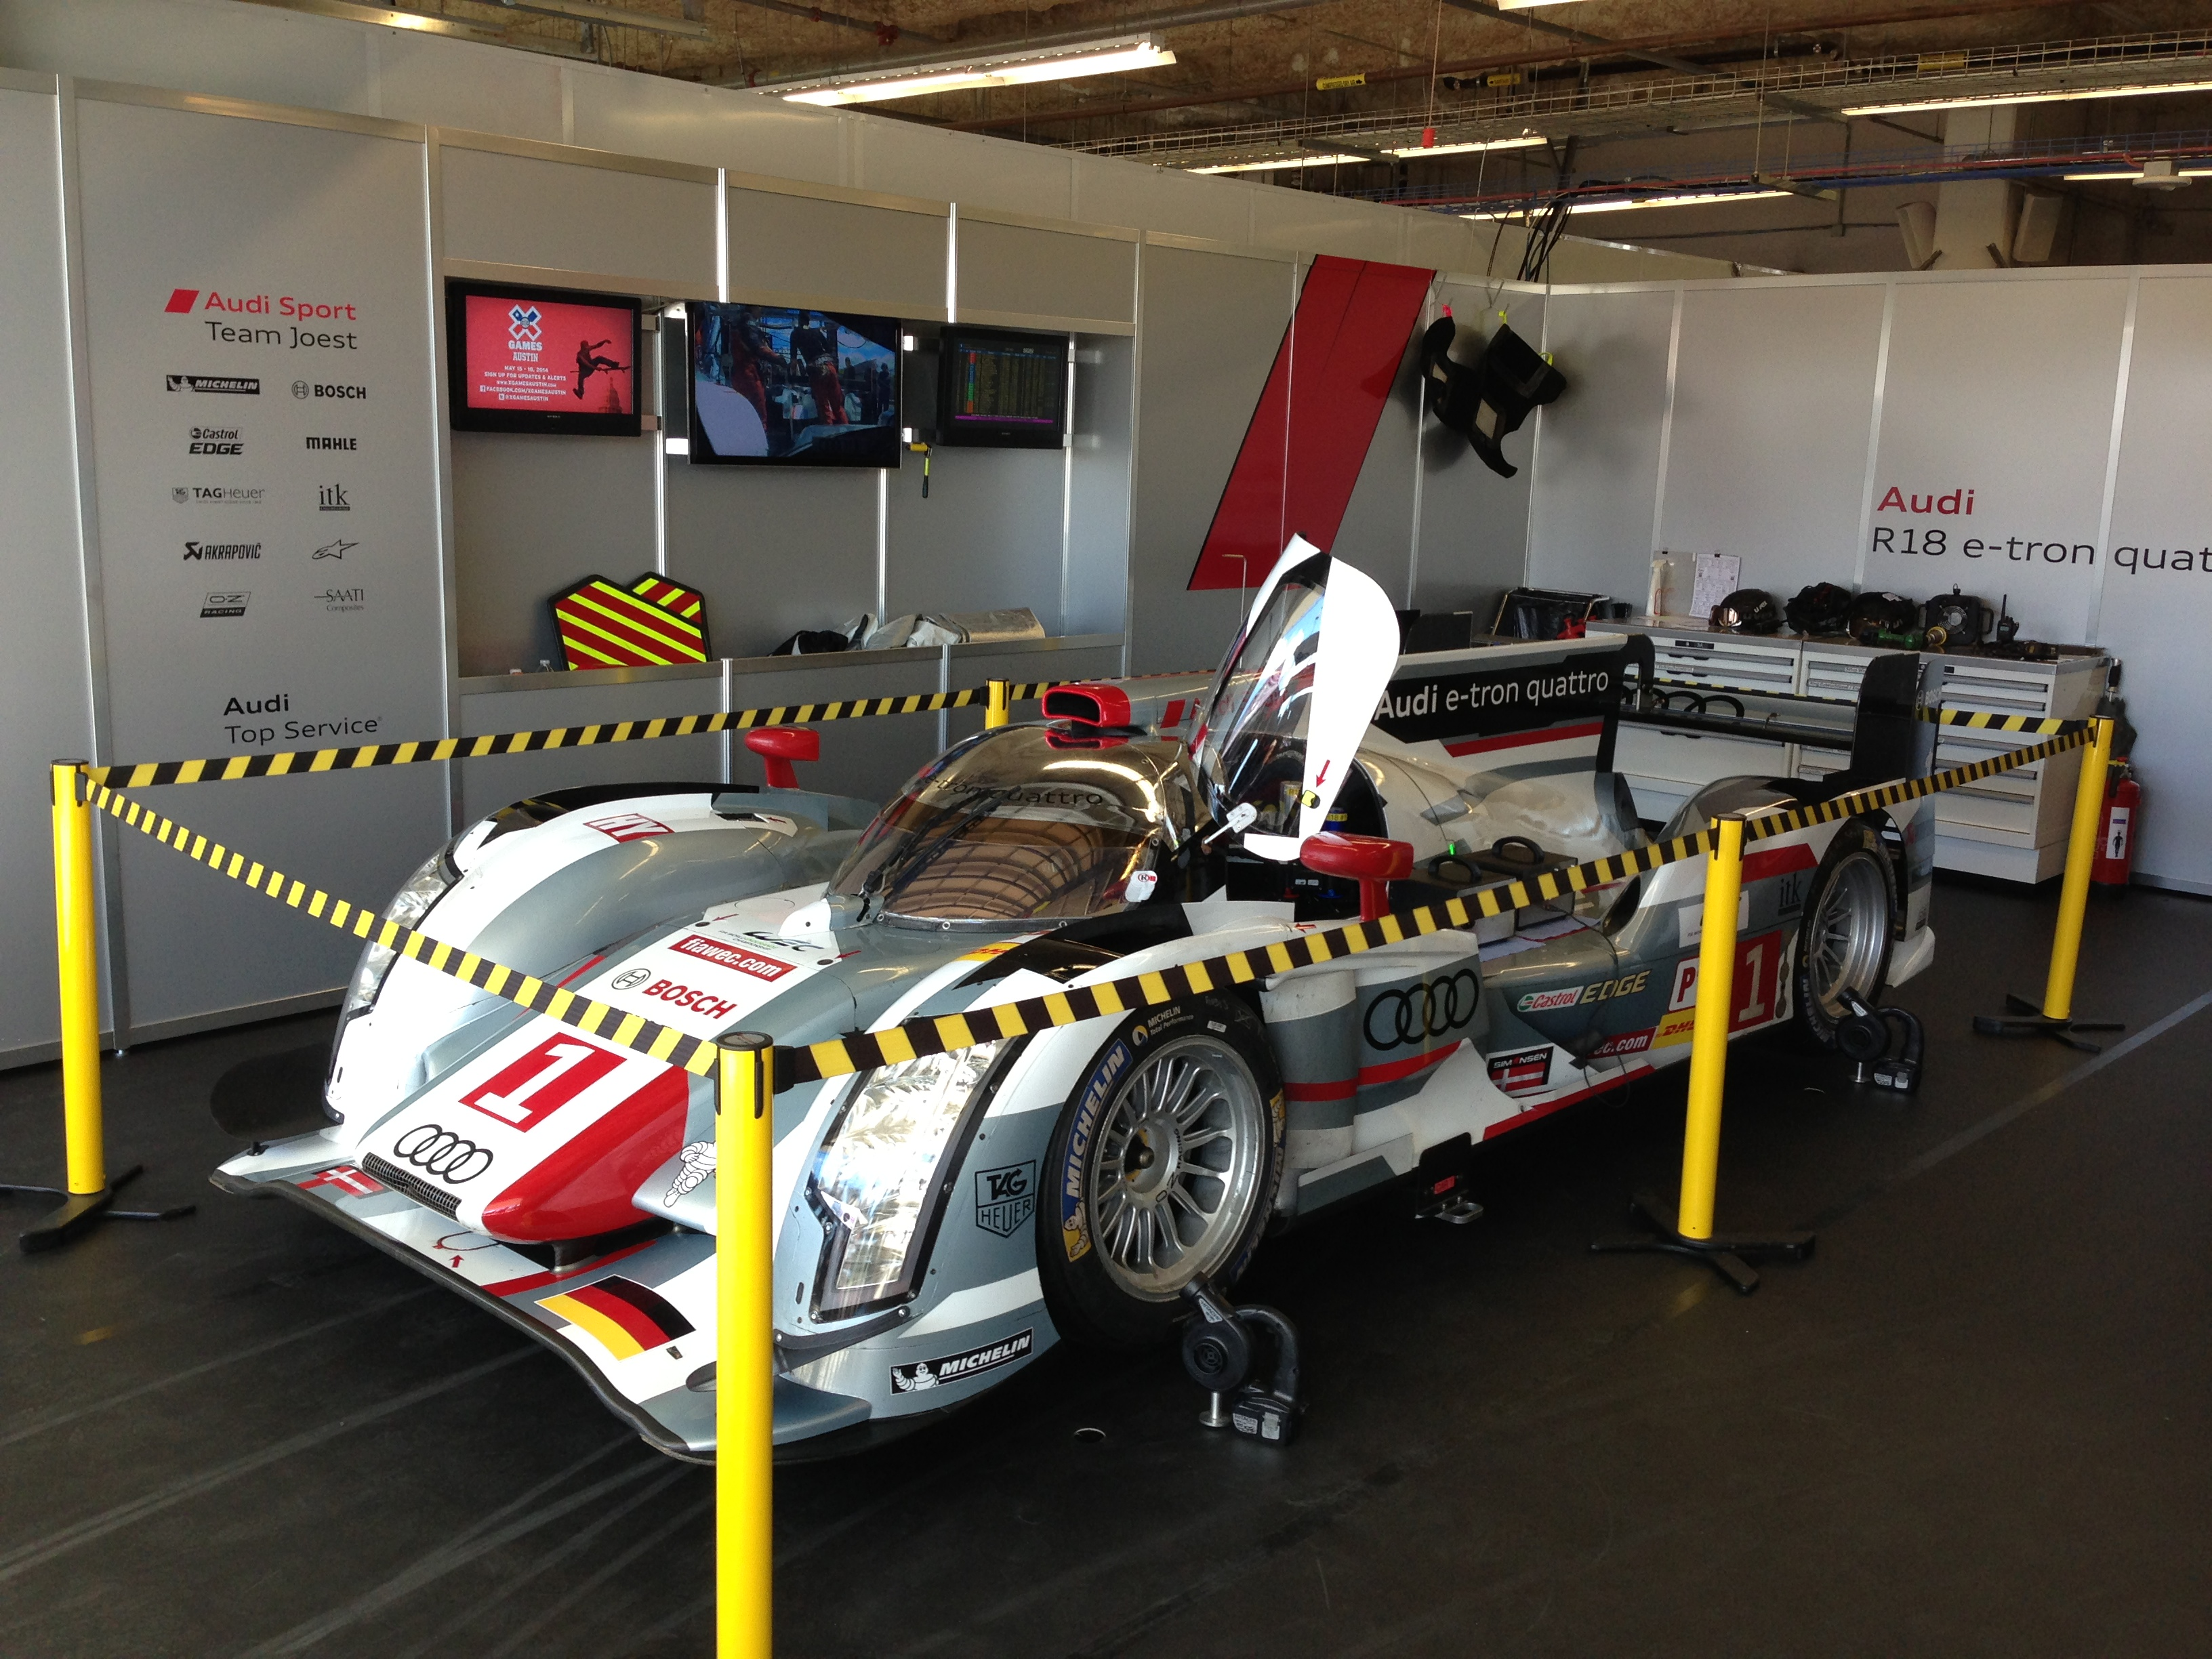 Audi's R18 on display at the COTA garages. The yellow rope is to keep ladies like myself from throwing themselves at this amazing, LeMans-winning race car.